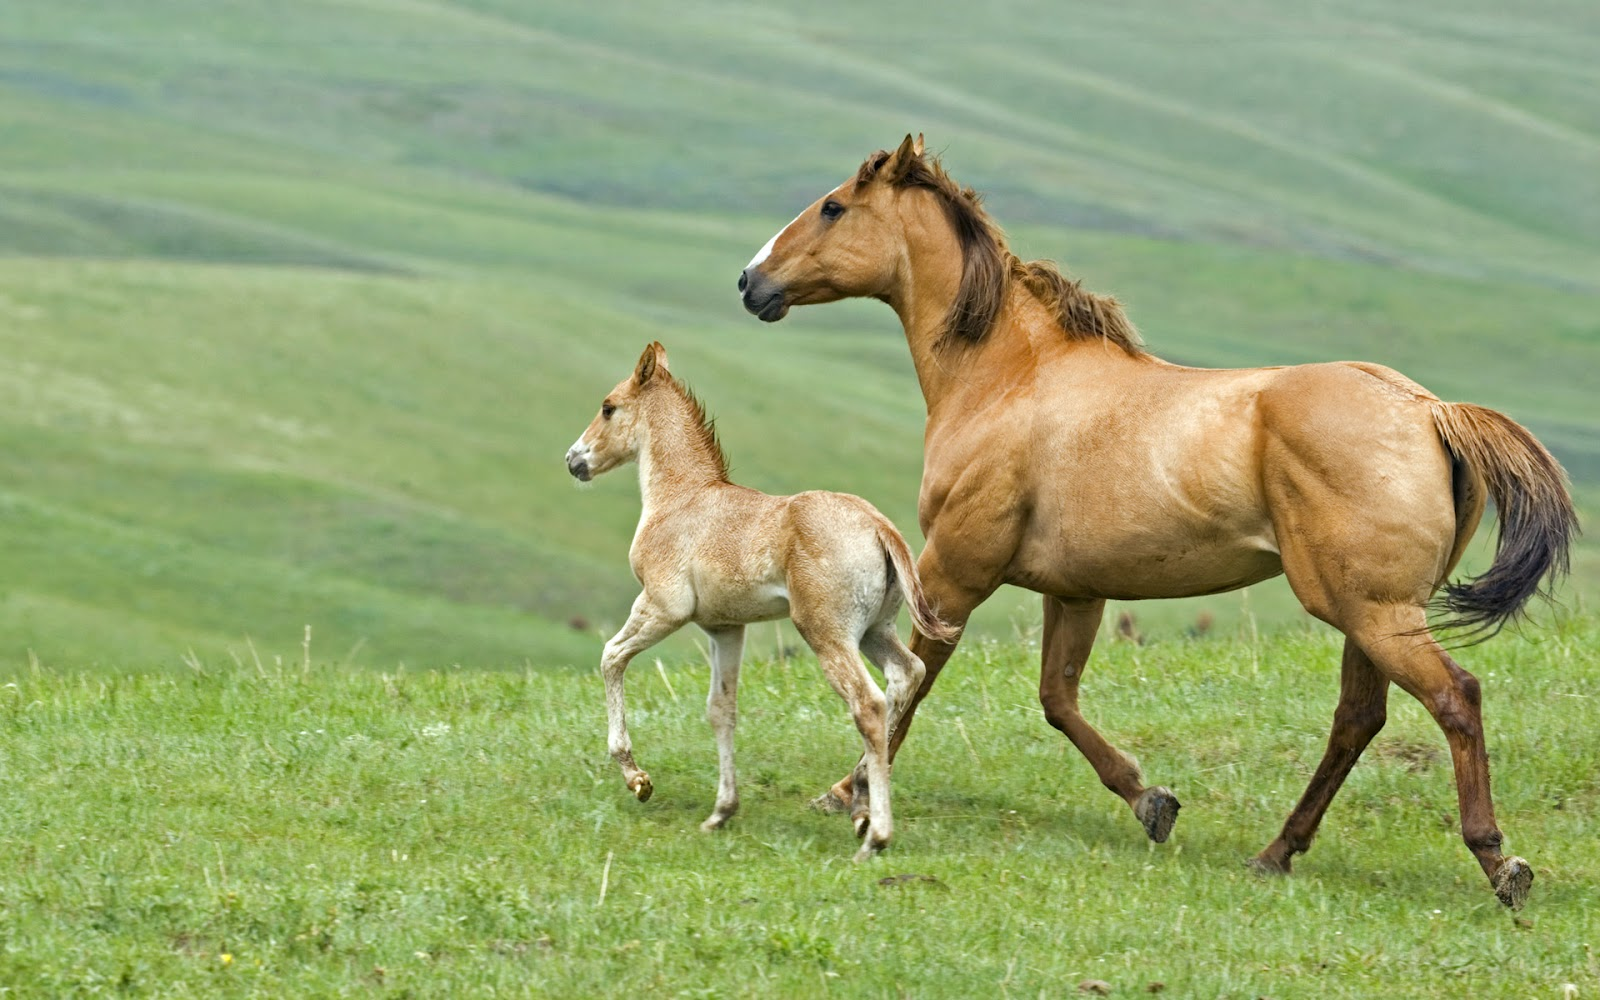 Must see   Wallpaper Horse Wolf - horse+running+with+baby  Pic_804316.jpg